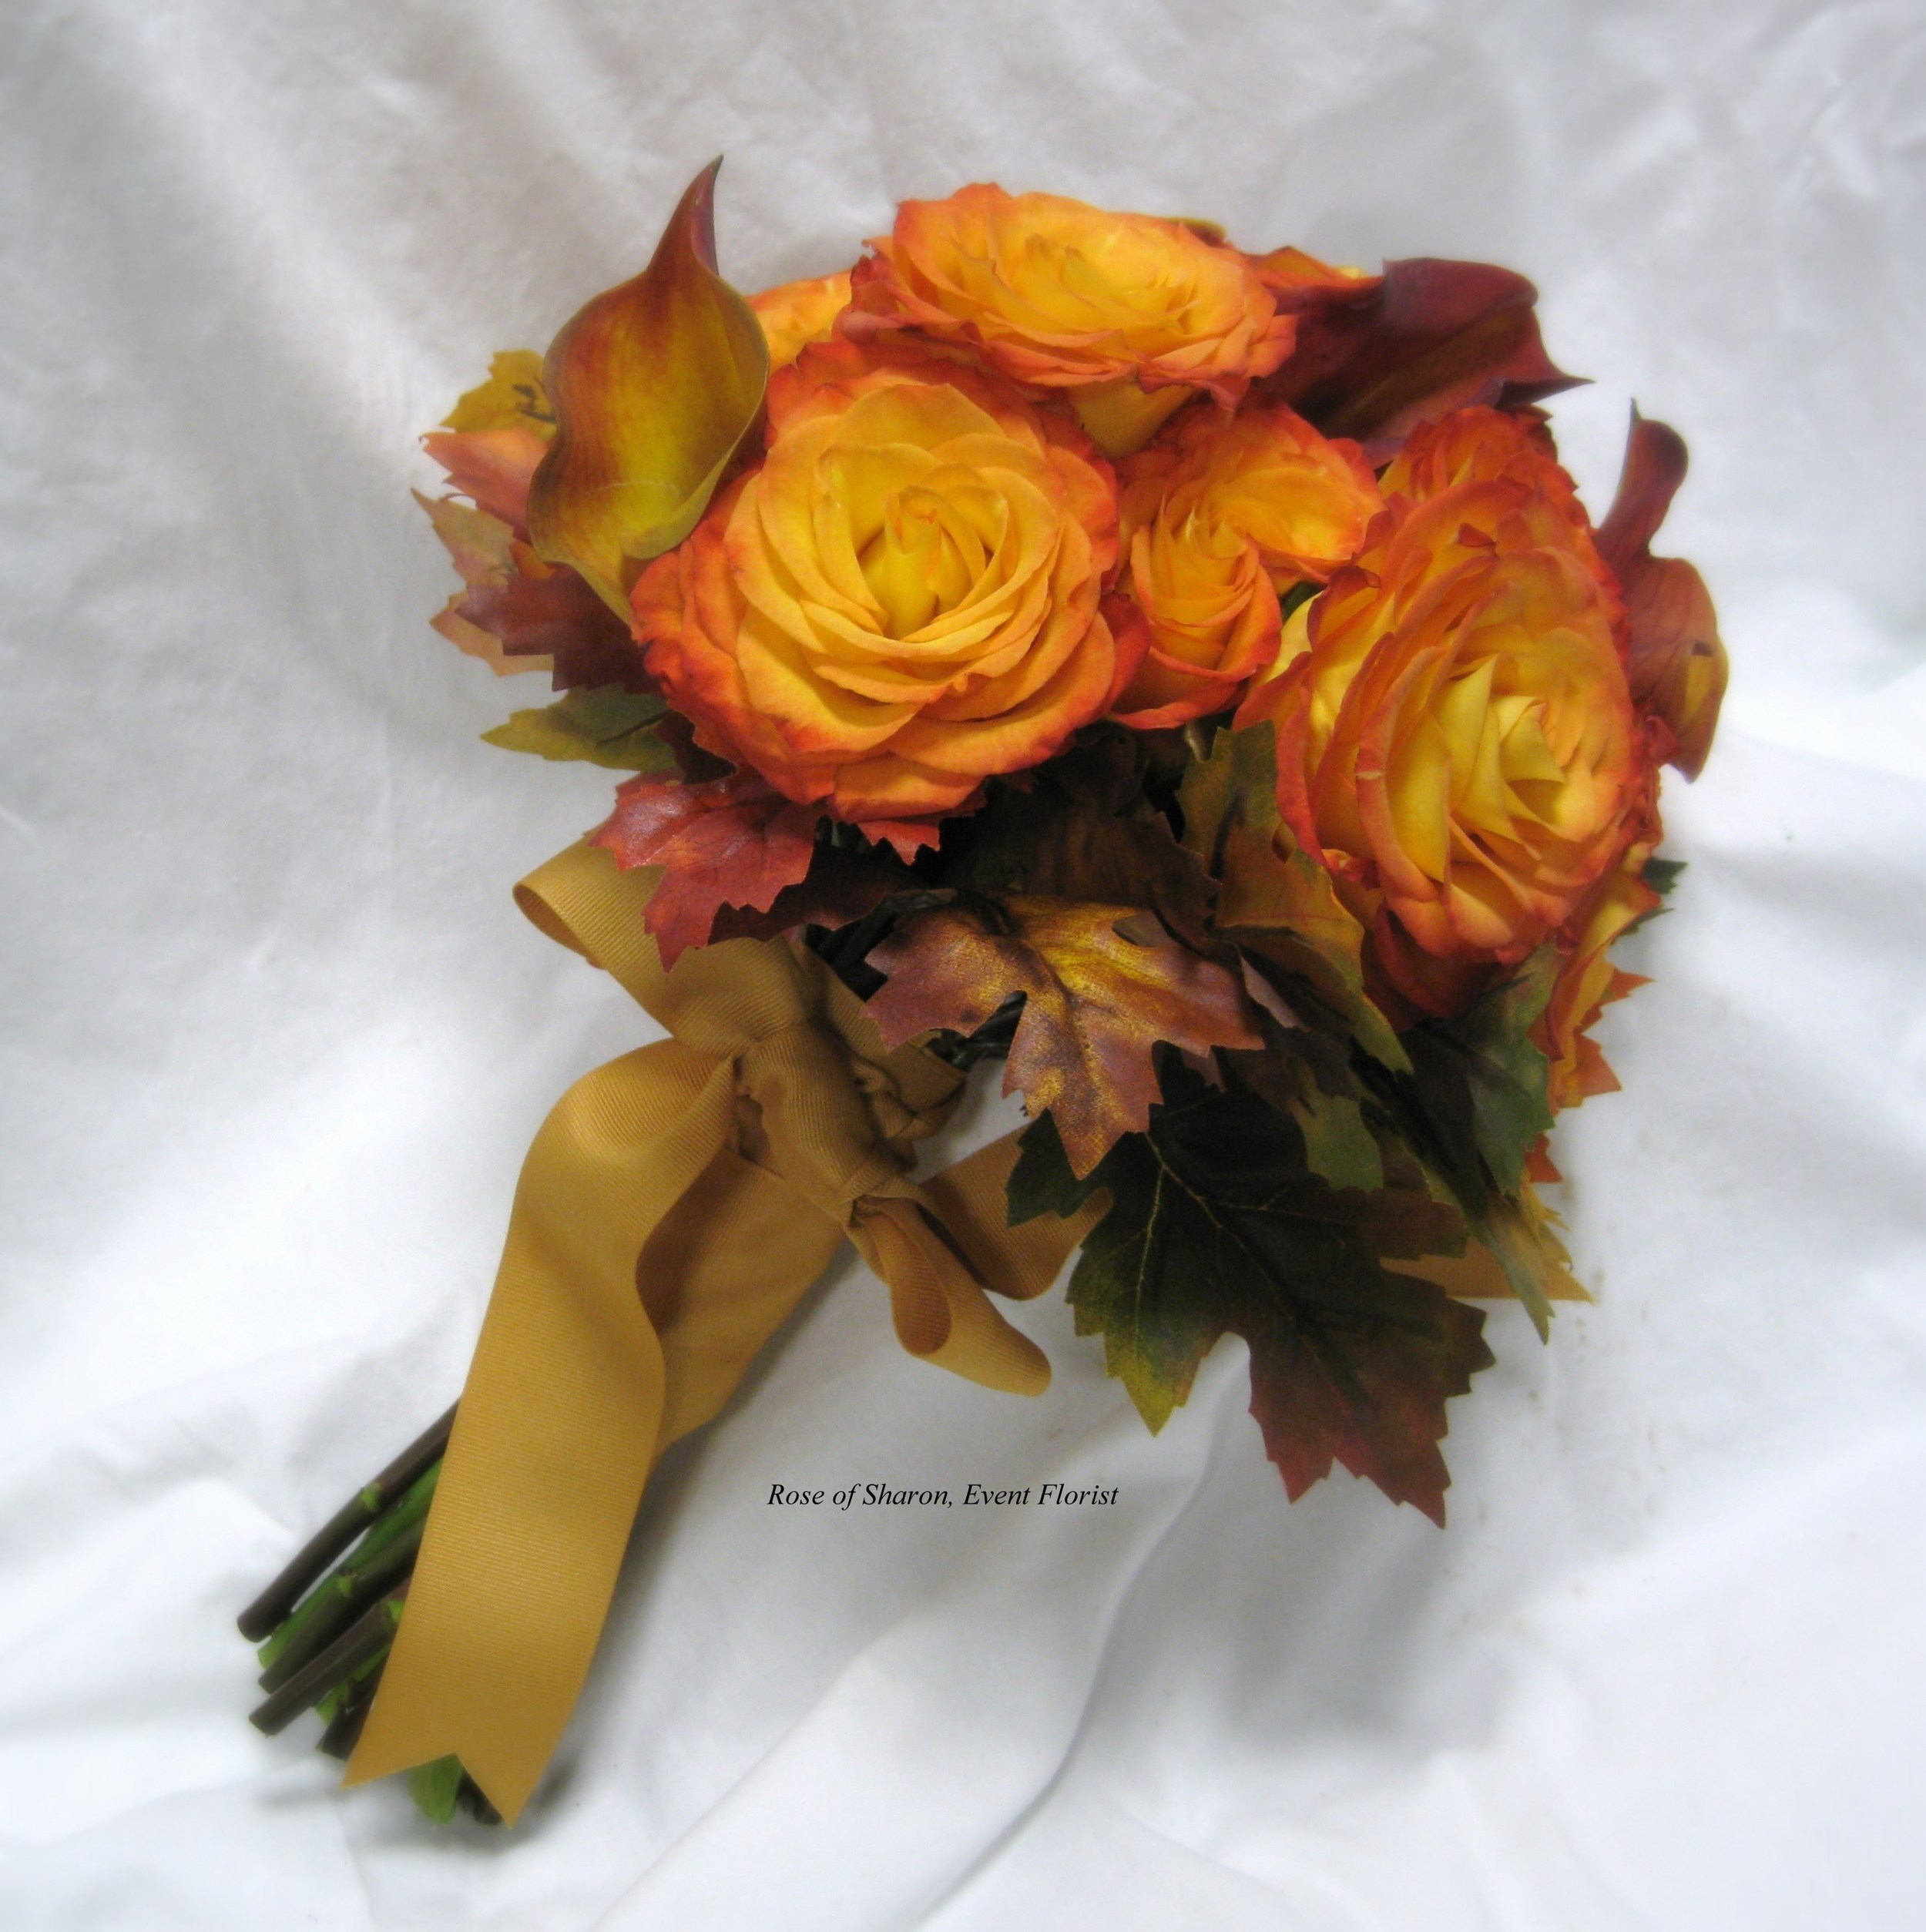 Orange Hand-Tied Bouquet with Calla Lilies, Free Spirit Roses & Autumn Leaves. Rose of Sharon Floral Designs